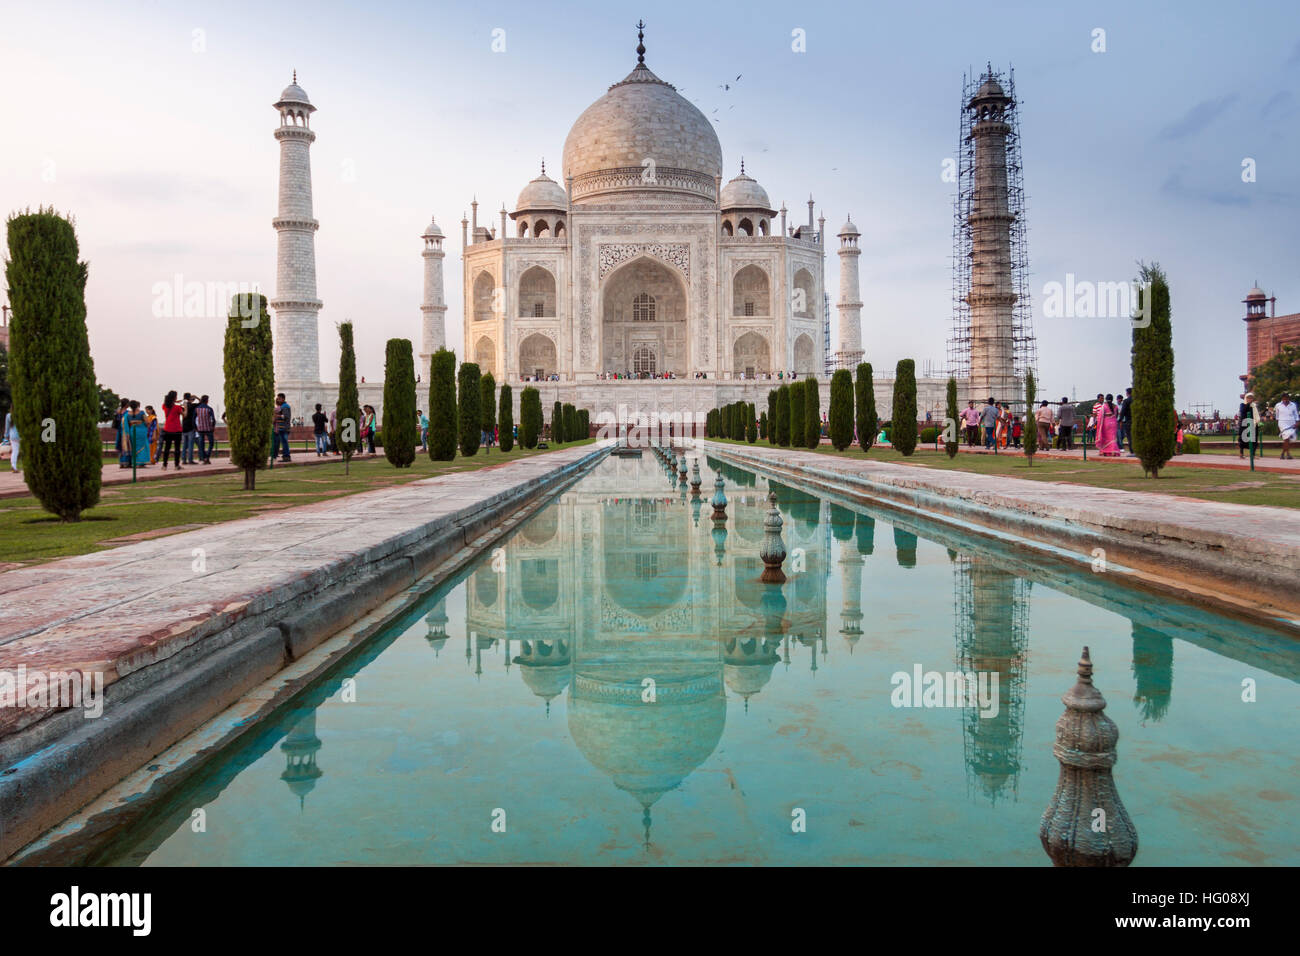 The reflex of Taj Mahal in the water in a hot summer afternoon. Agra, Uttar Pradesh. India - Stock Image